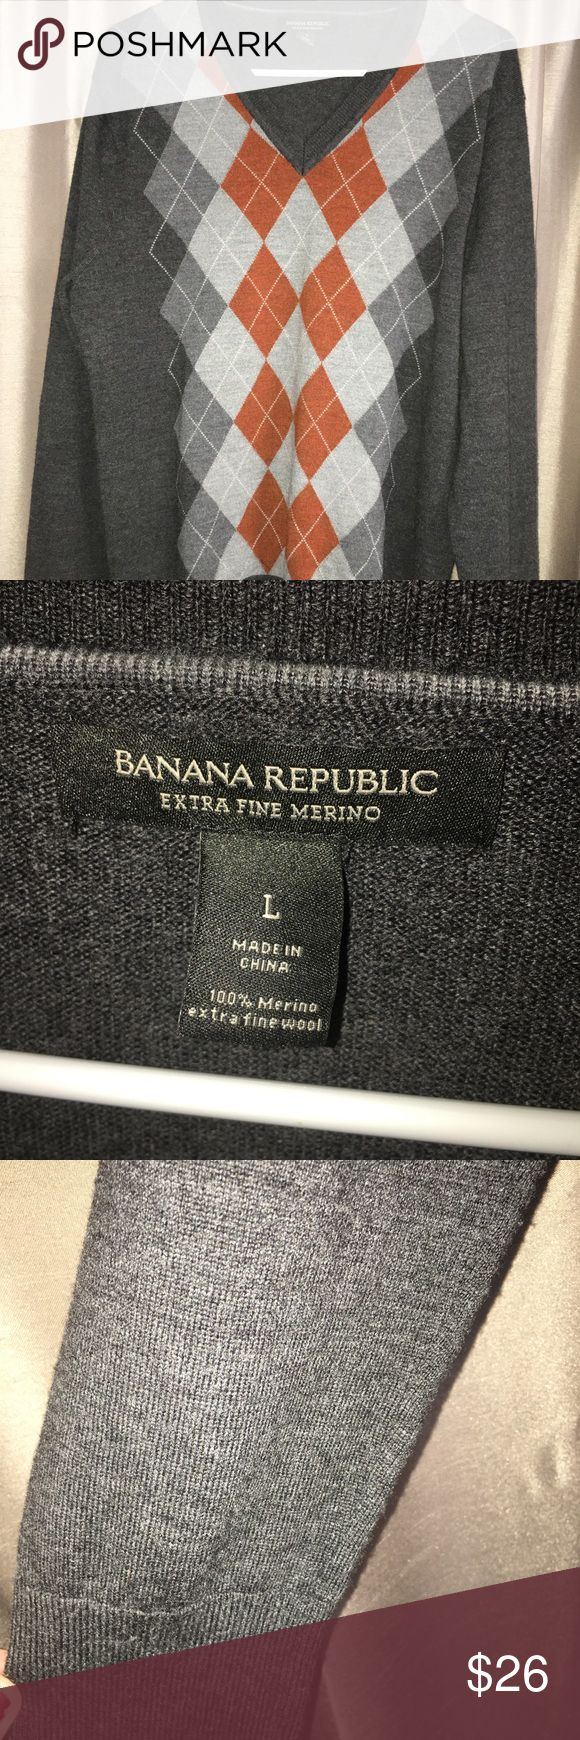 Banana republic fine merino wool argyle sweater EUC- Flawless. Worn once for Holiday pics by my son. No pilling, or issues as shown in the pictures. ✅ Serious offers considered!  📦📫 Same or nextday shipping from Tennessee. 🎸 (Weekends and holidays excluded) Banana Republic Sweaters V-Neck